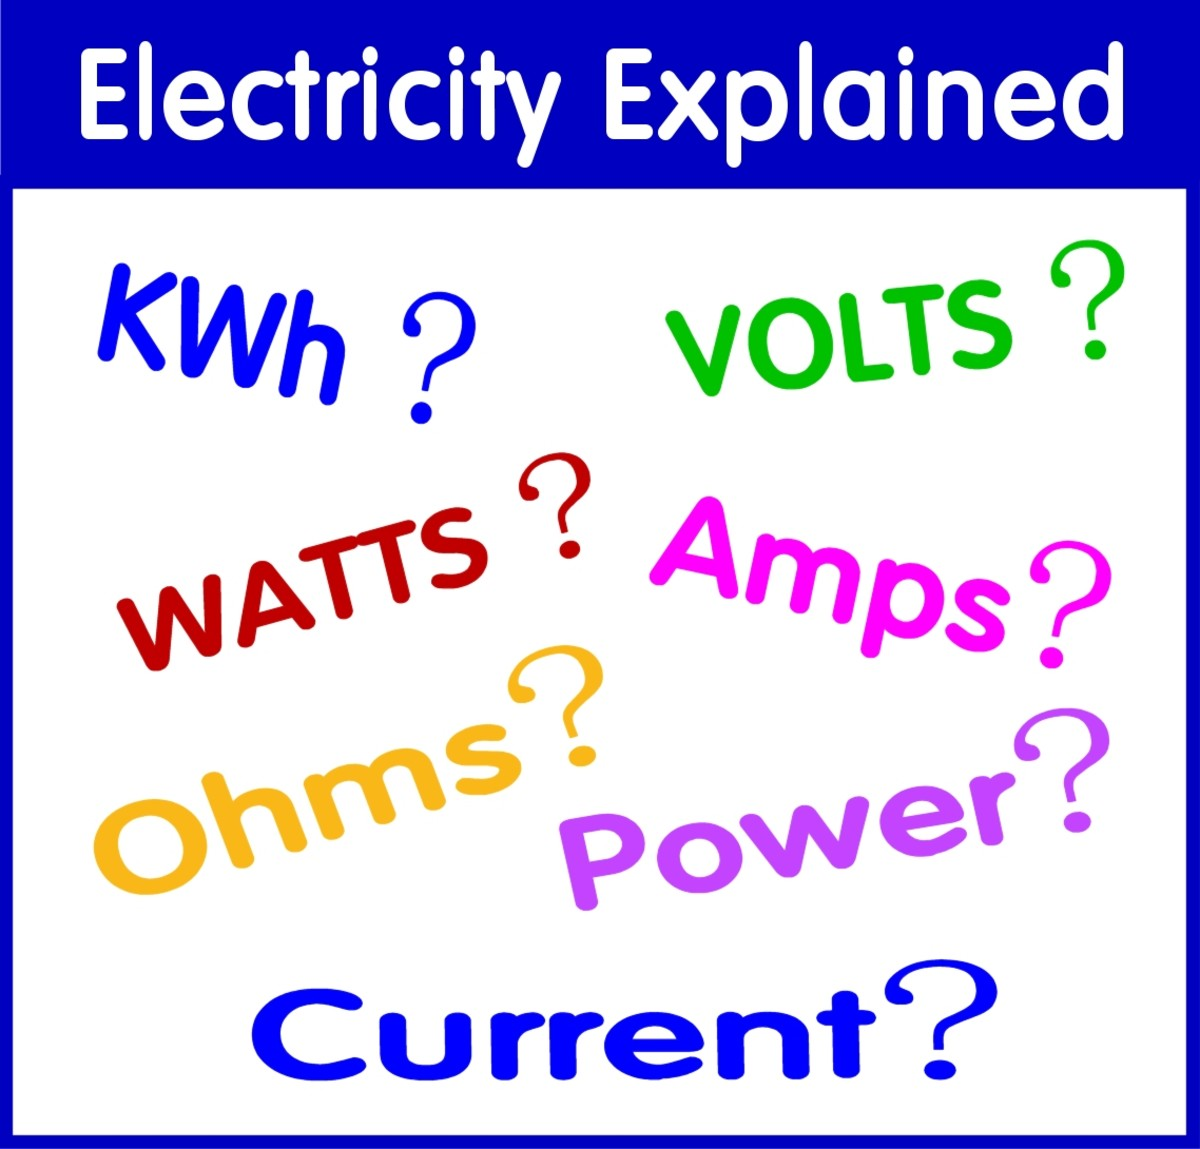 hight resolution of understanding electricity volts amps watts kilowatt hours kwh ohms and electrical appliances owlcation